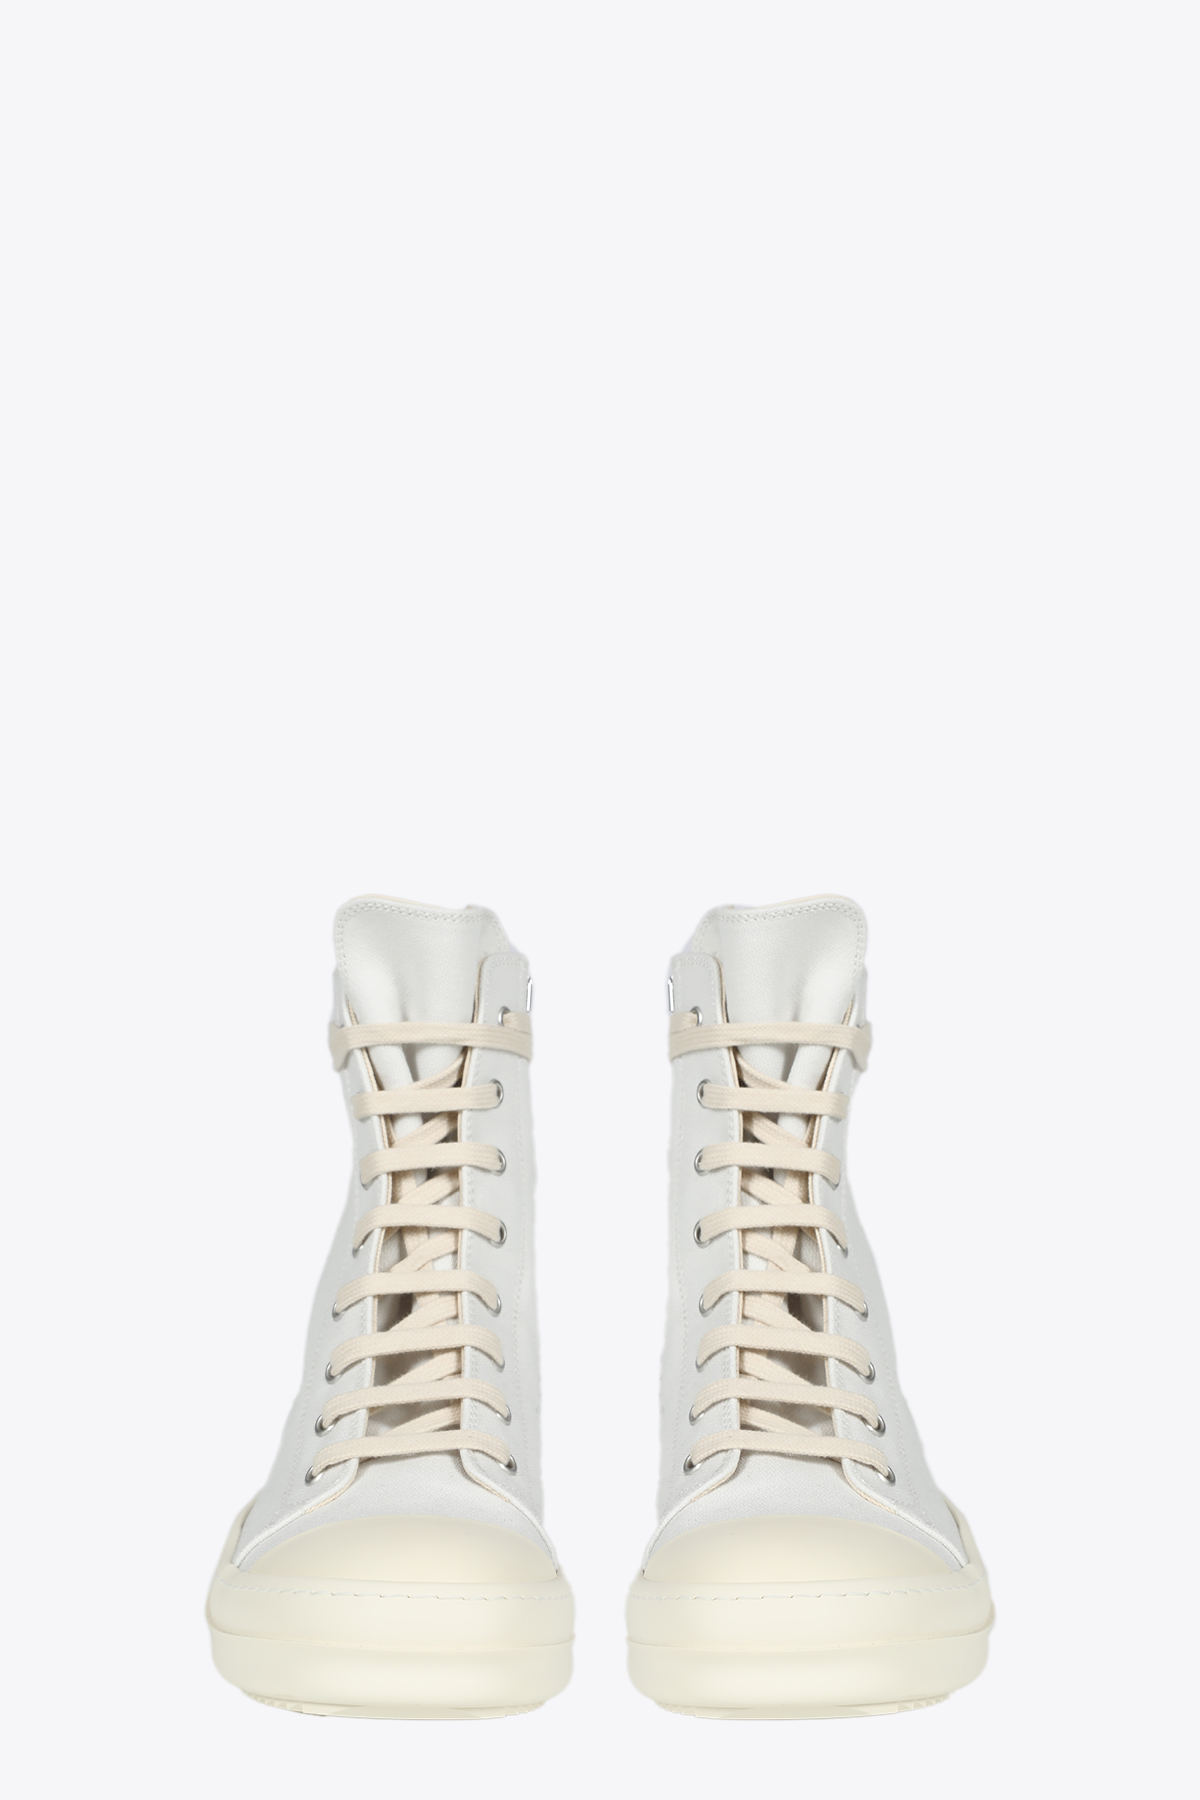 LACE UP HIGH TOP SNEAKERS RICK OWENS-DRKSHDW | 10000039 | DU21S2800 TNAPH2 SNEAKERS8111